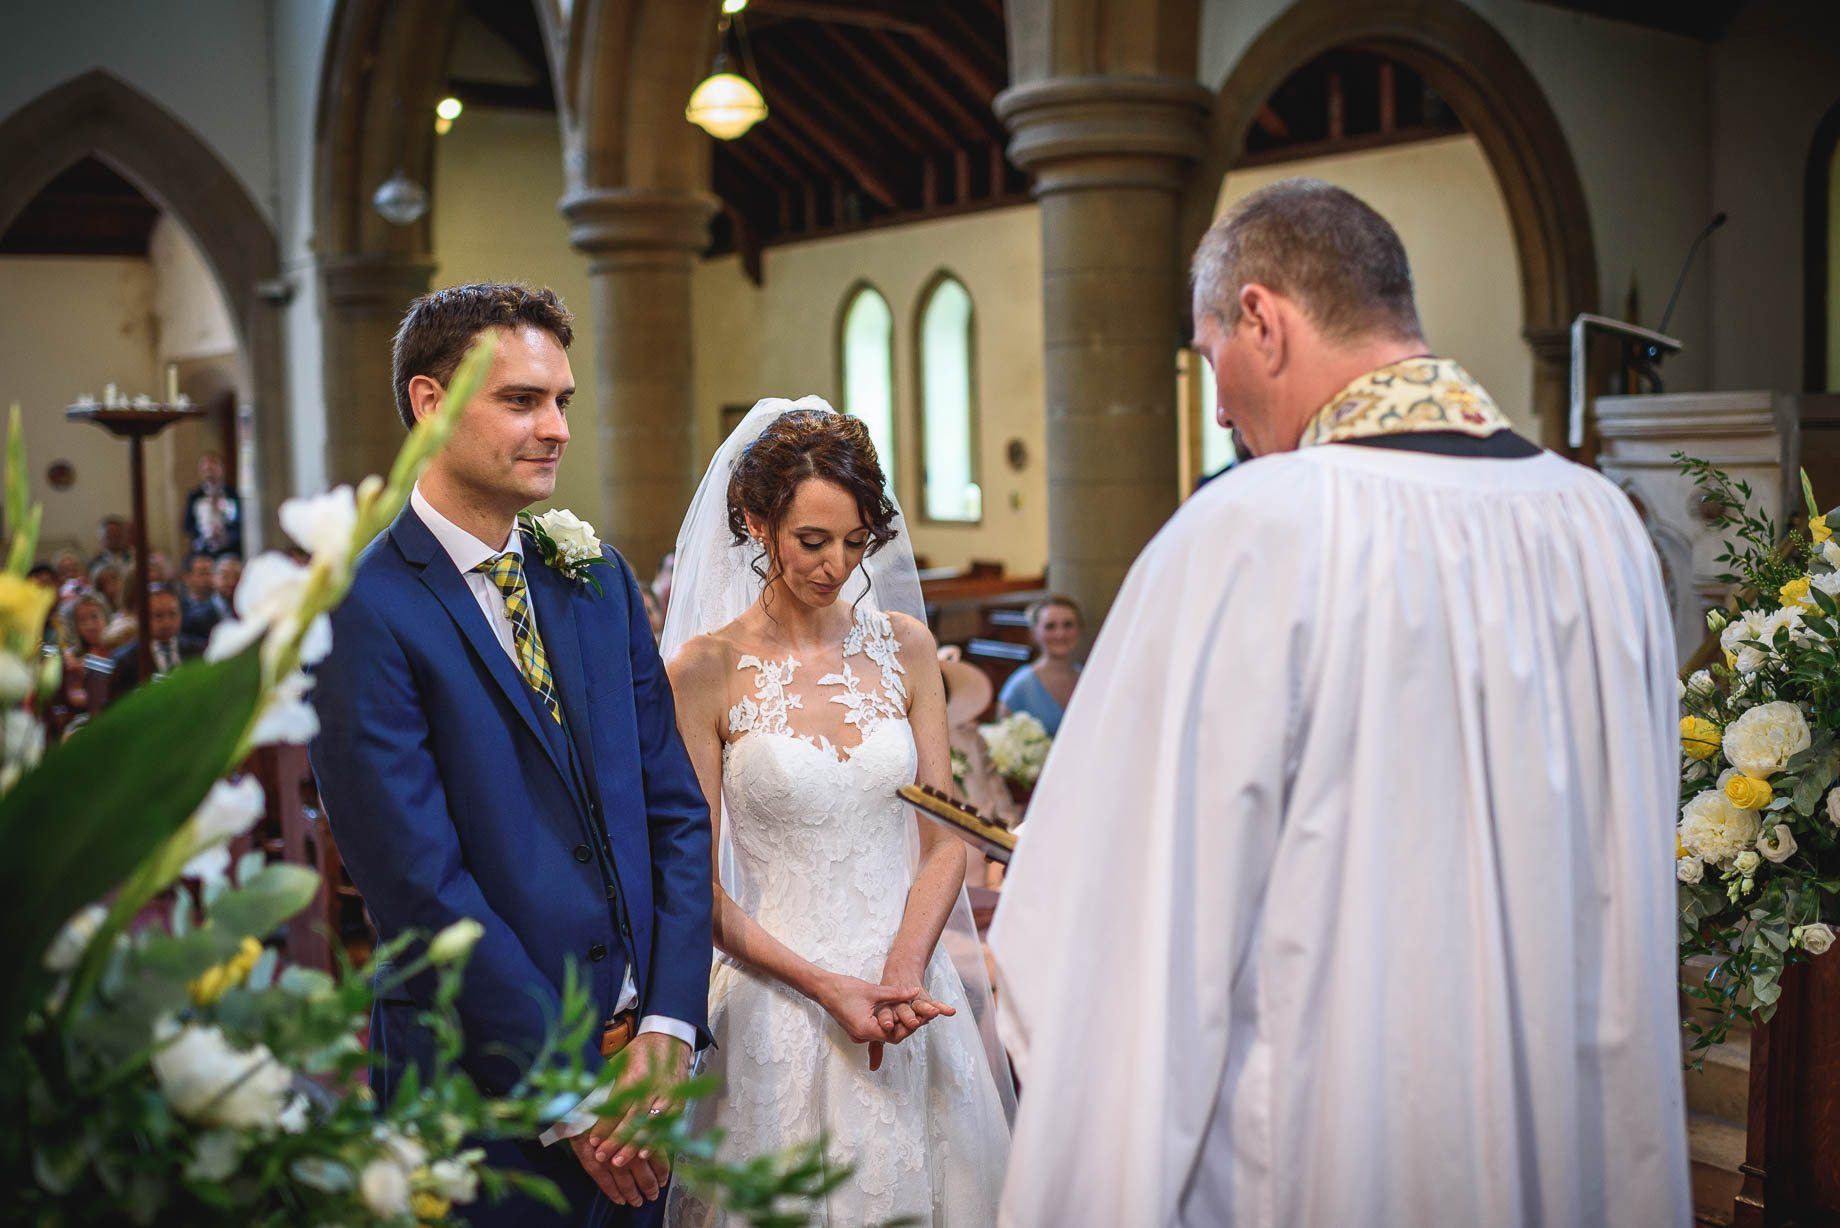 Hertfordshire wedding photography - Sarah and Stephen by Guy Collier Photography (63 of 161)